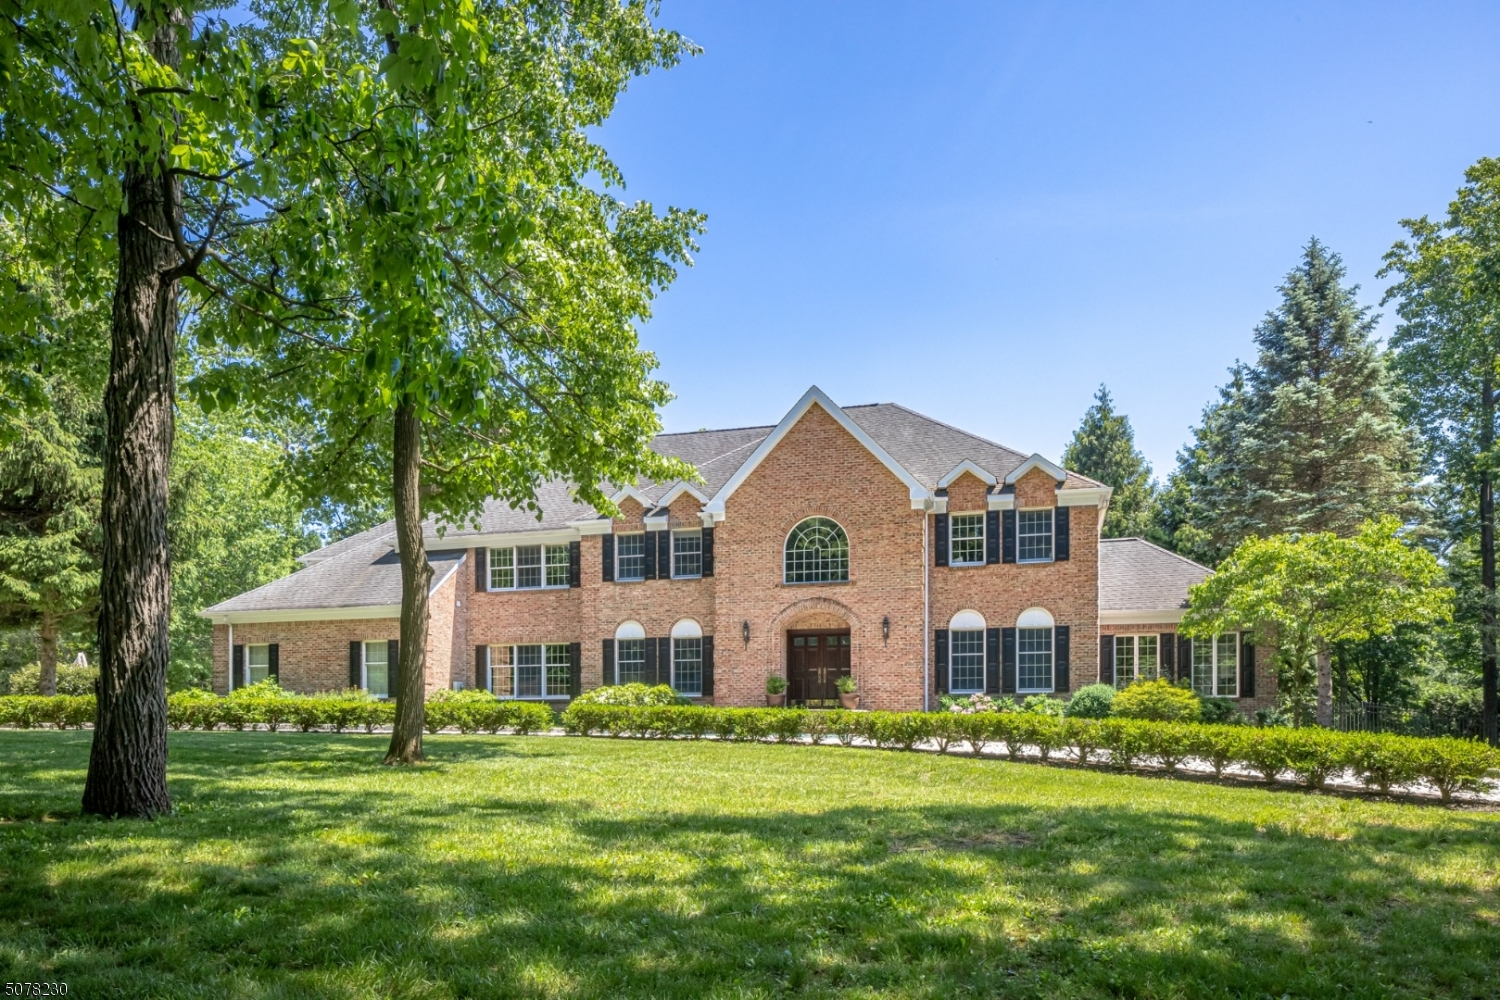 An exceptional Bernardsville neighborhood provides the setting for this spacious custom home on 1.57 acres. Raised paneling, extensive millwork, and hardwood flooring are found throughout. Three levels of living space include; Living Room, Dining Room, Butler's Pantry, Kitchen, expansive Family Room w/ Fireplace and Wet Bar, Library, Sunroom & Billiards Room/Office. On the 2nd level, the substantial Primary Suite offers privacy, bedroom with tray ceiling and fireplace, sitting room, bath, and large dual walk-in closets. Four additional bedrooms, 2 ensuite, and a laundry room complete this level. The finished lower level includes TV Area, Arts & Crafts room with half bath, Wine & Exercise Rooms. The impressive bluestone patio overlooks the open, rear yard. Circular paver drive with 4-car garage.